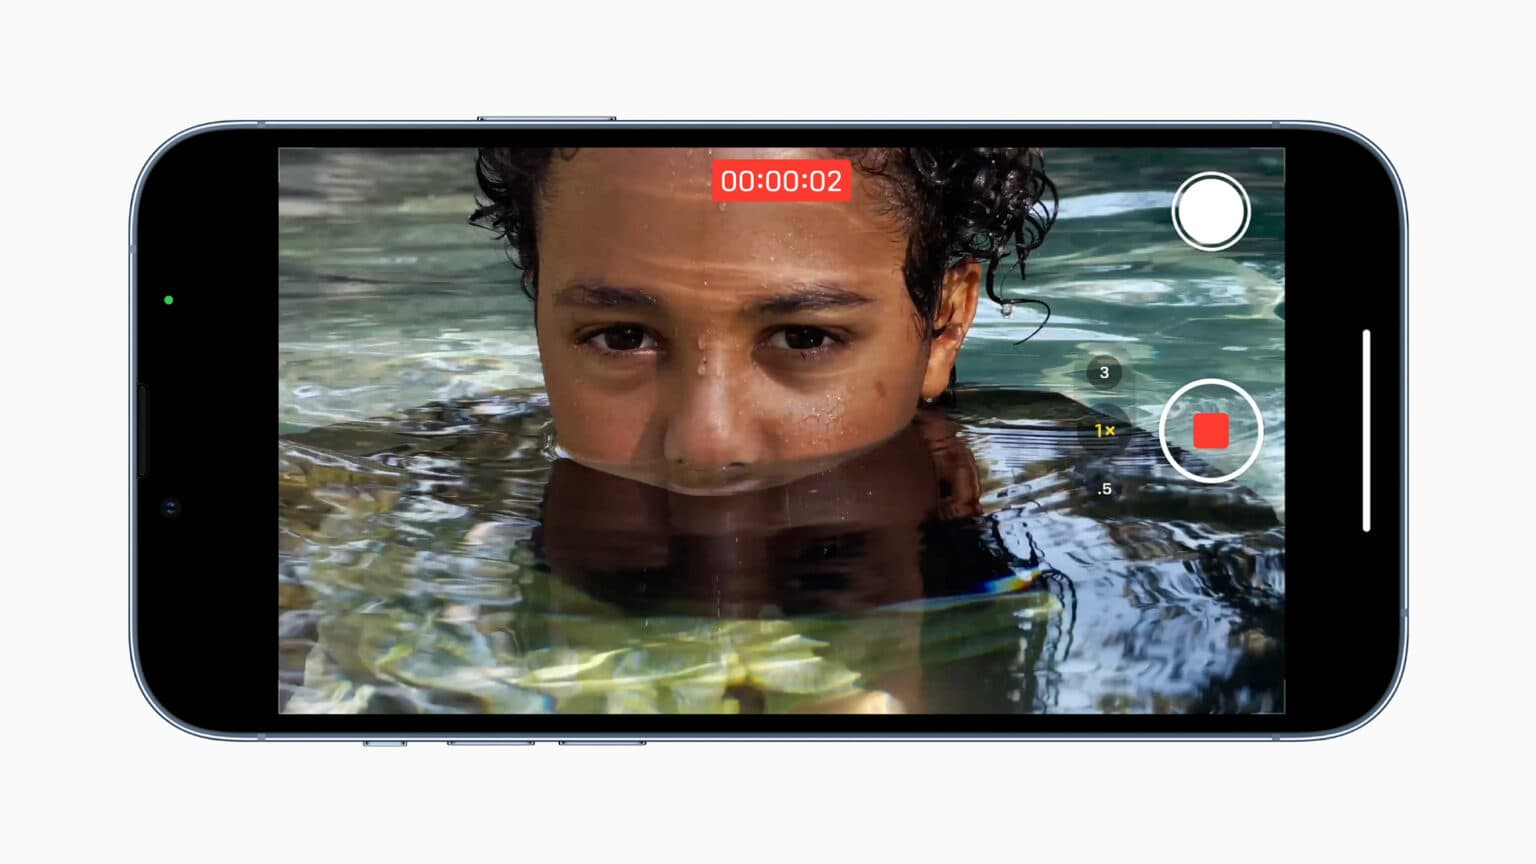 iPhone 13 Pro gets ProRes video